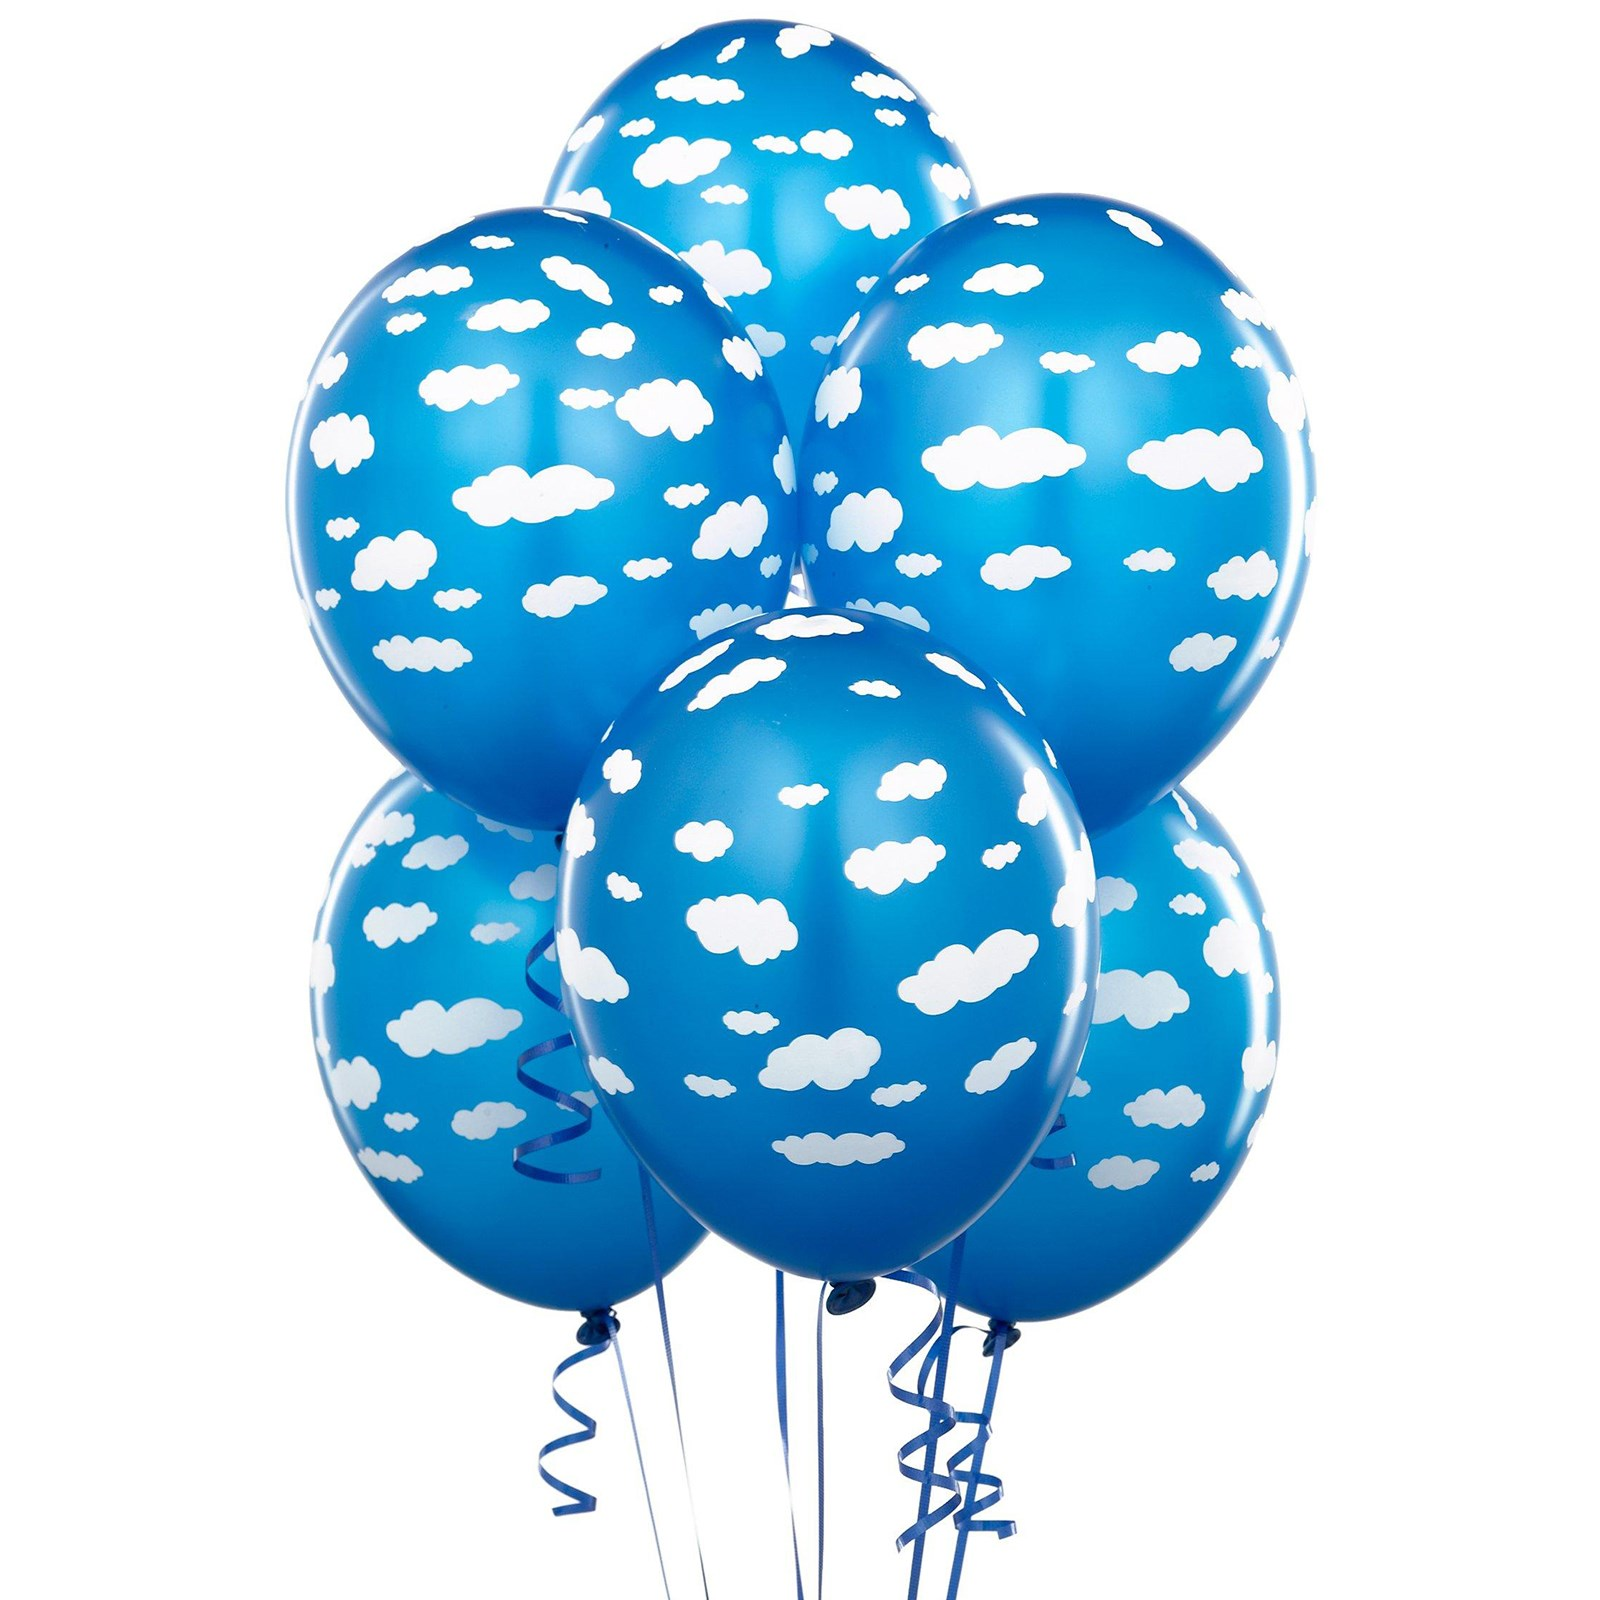 Mid blue with clouds matte balloons for Balloon cloud decoration